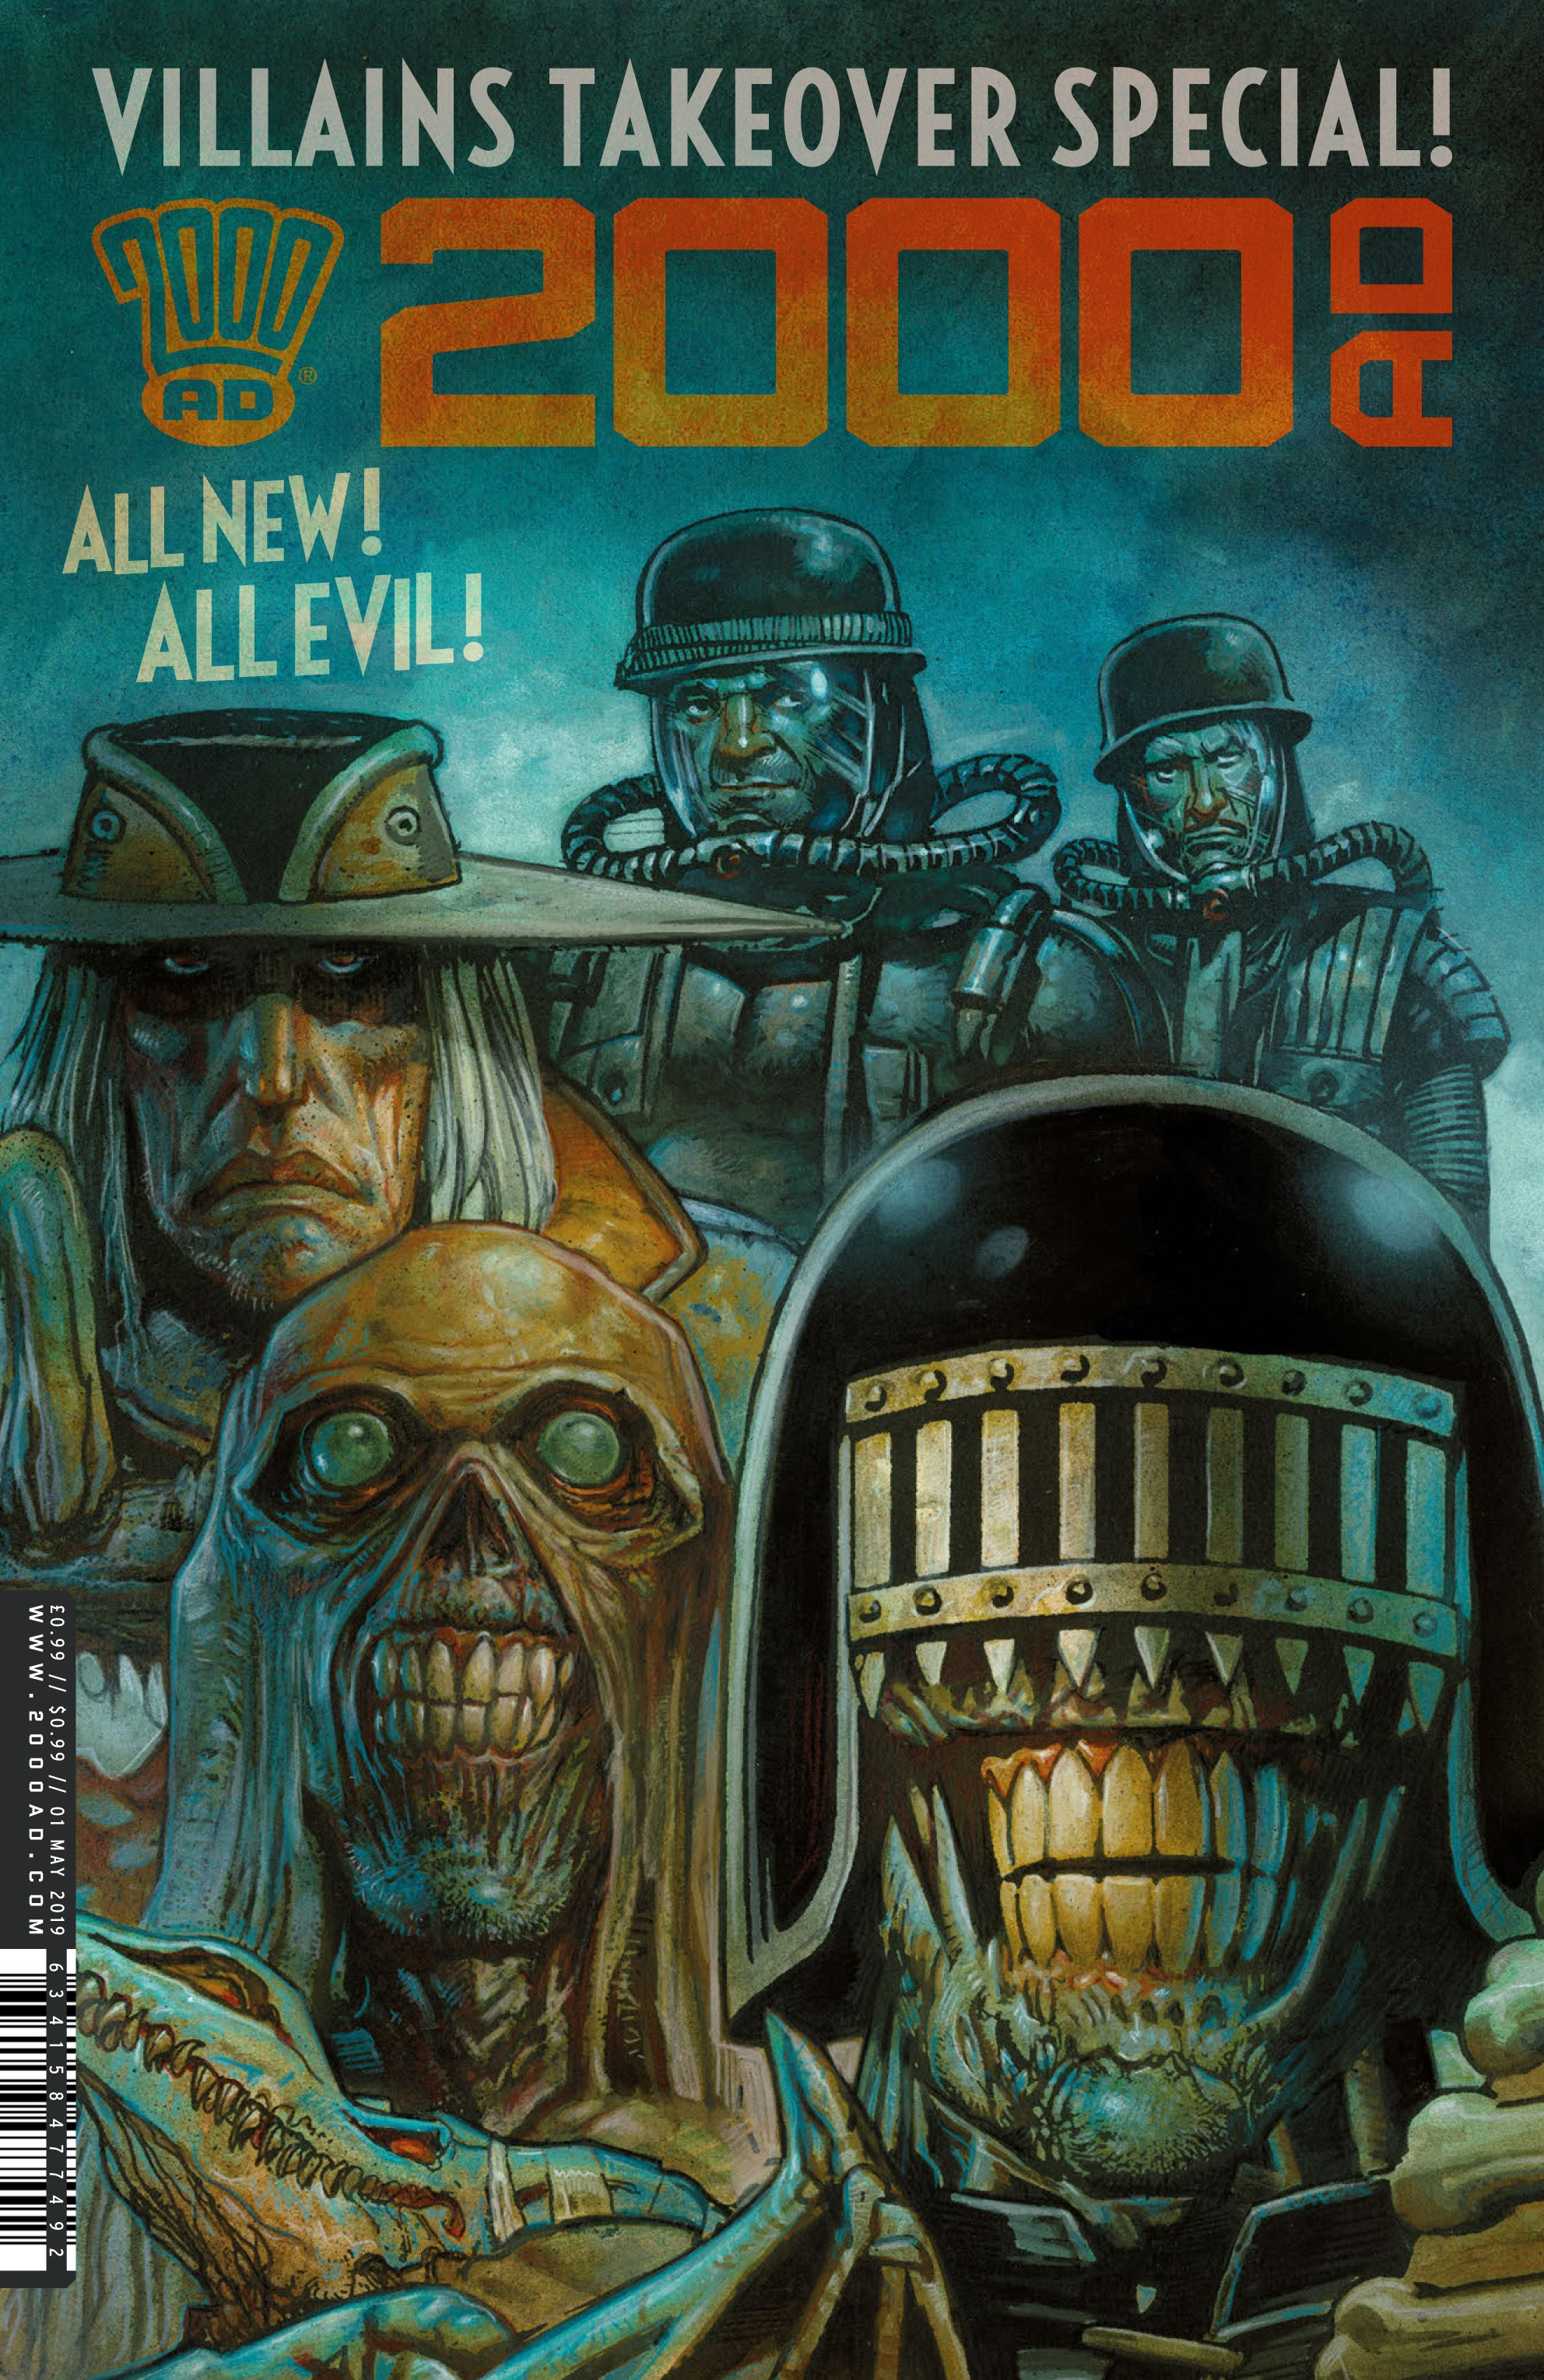 2000 AD Villains Special Full Page 1